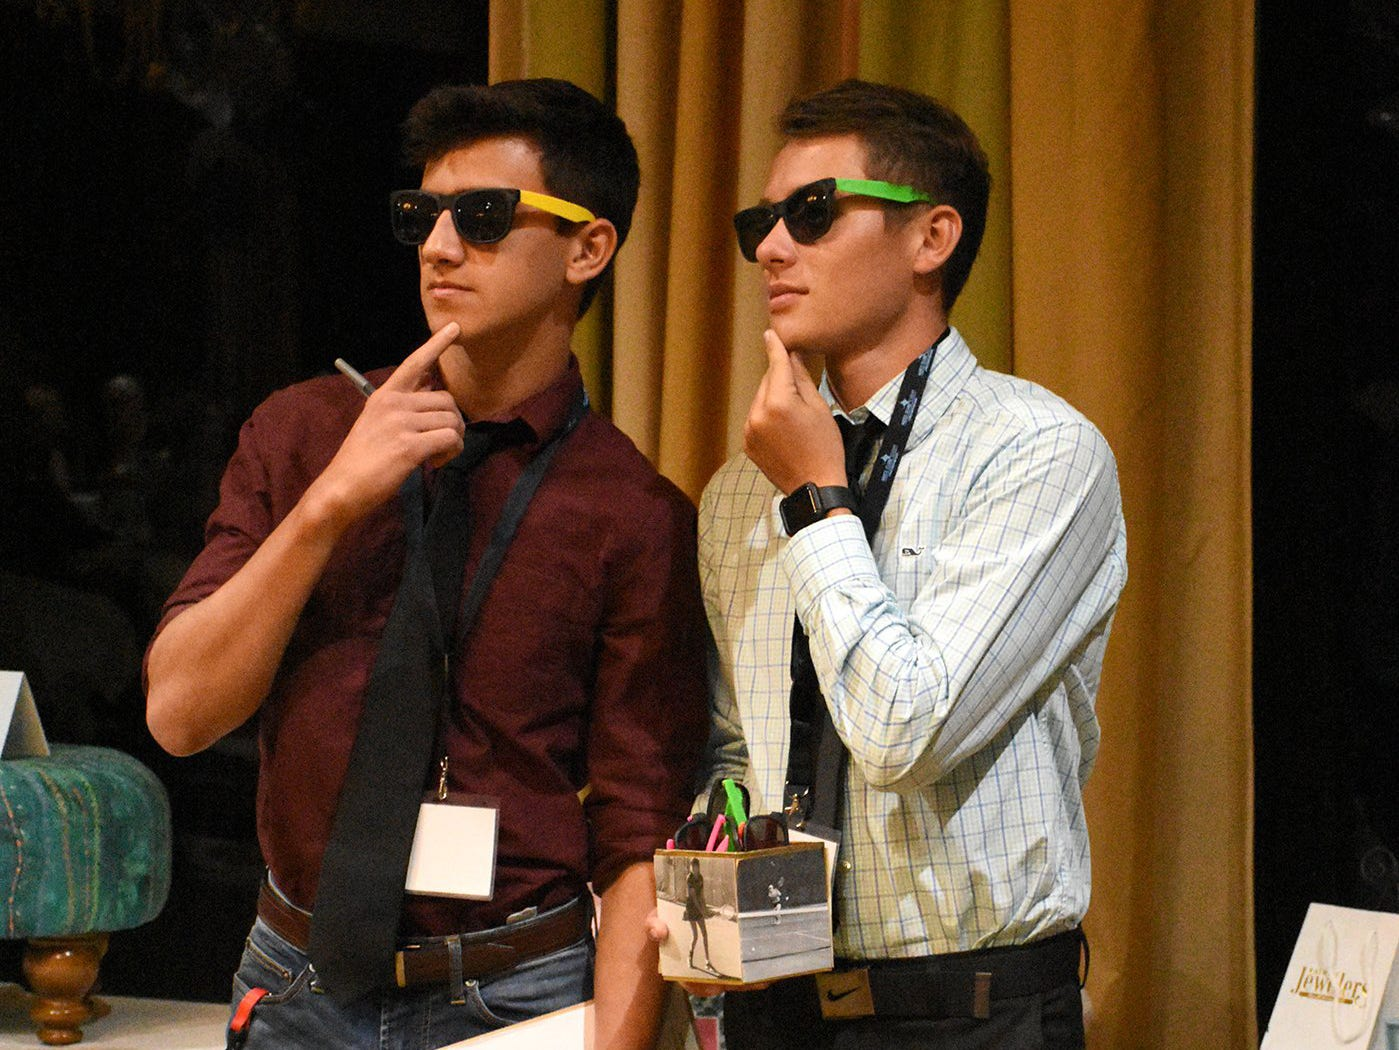 Student spotters Tristan Arroyave, left, and Garrett Chamberlain watch for paddles going up during the call to action. Marco Island Academy held 'Cheers for Champions,' a benefit dinner to raise funds for the school's athletic programs, Saturday evening at Hideaway Beach Club.